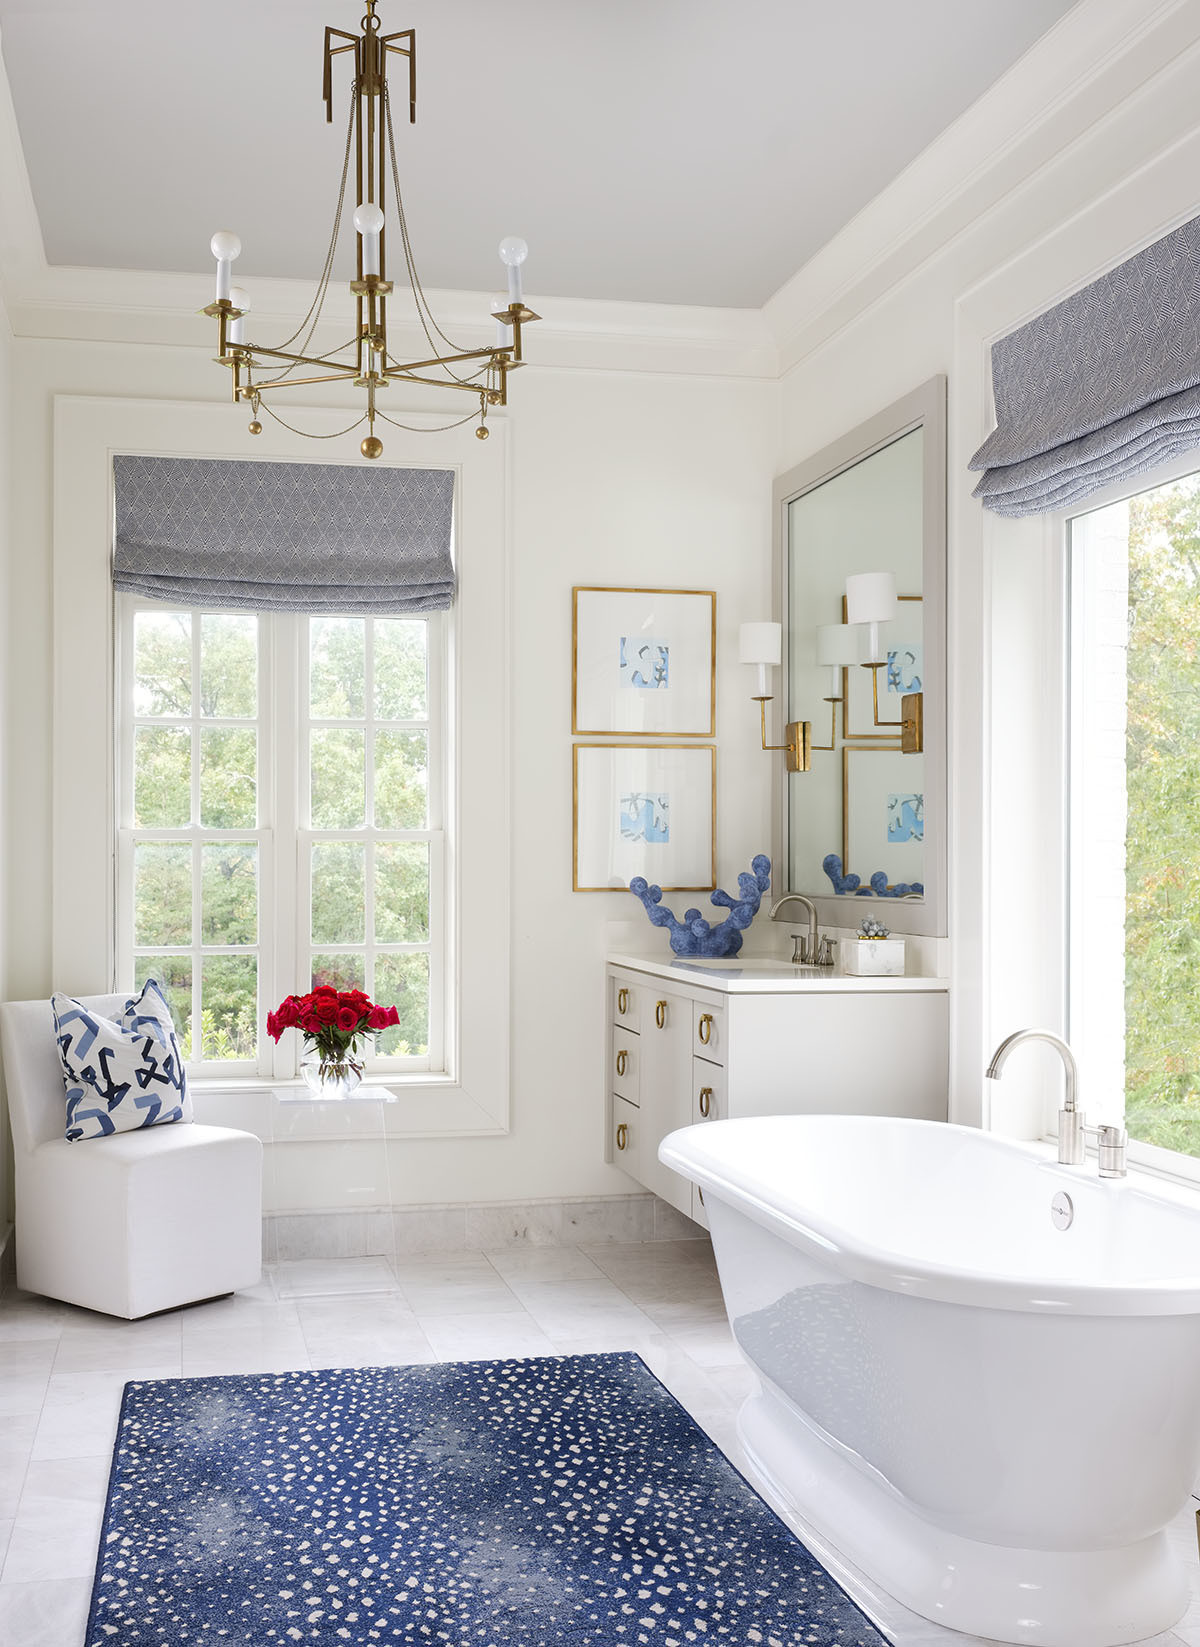 Simplicity is key in the serene bathroom with muted hues of blue and metallic accents. Victoria & Albert Bathtub | Custom Shades |Stark Studio Runner | Custom Cabinetry | Custom Mirror |Circa Lighting Pendant and Sconce Lights |Restoration Hardware Side Chair |